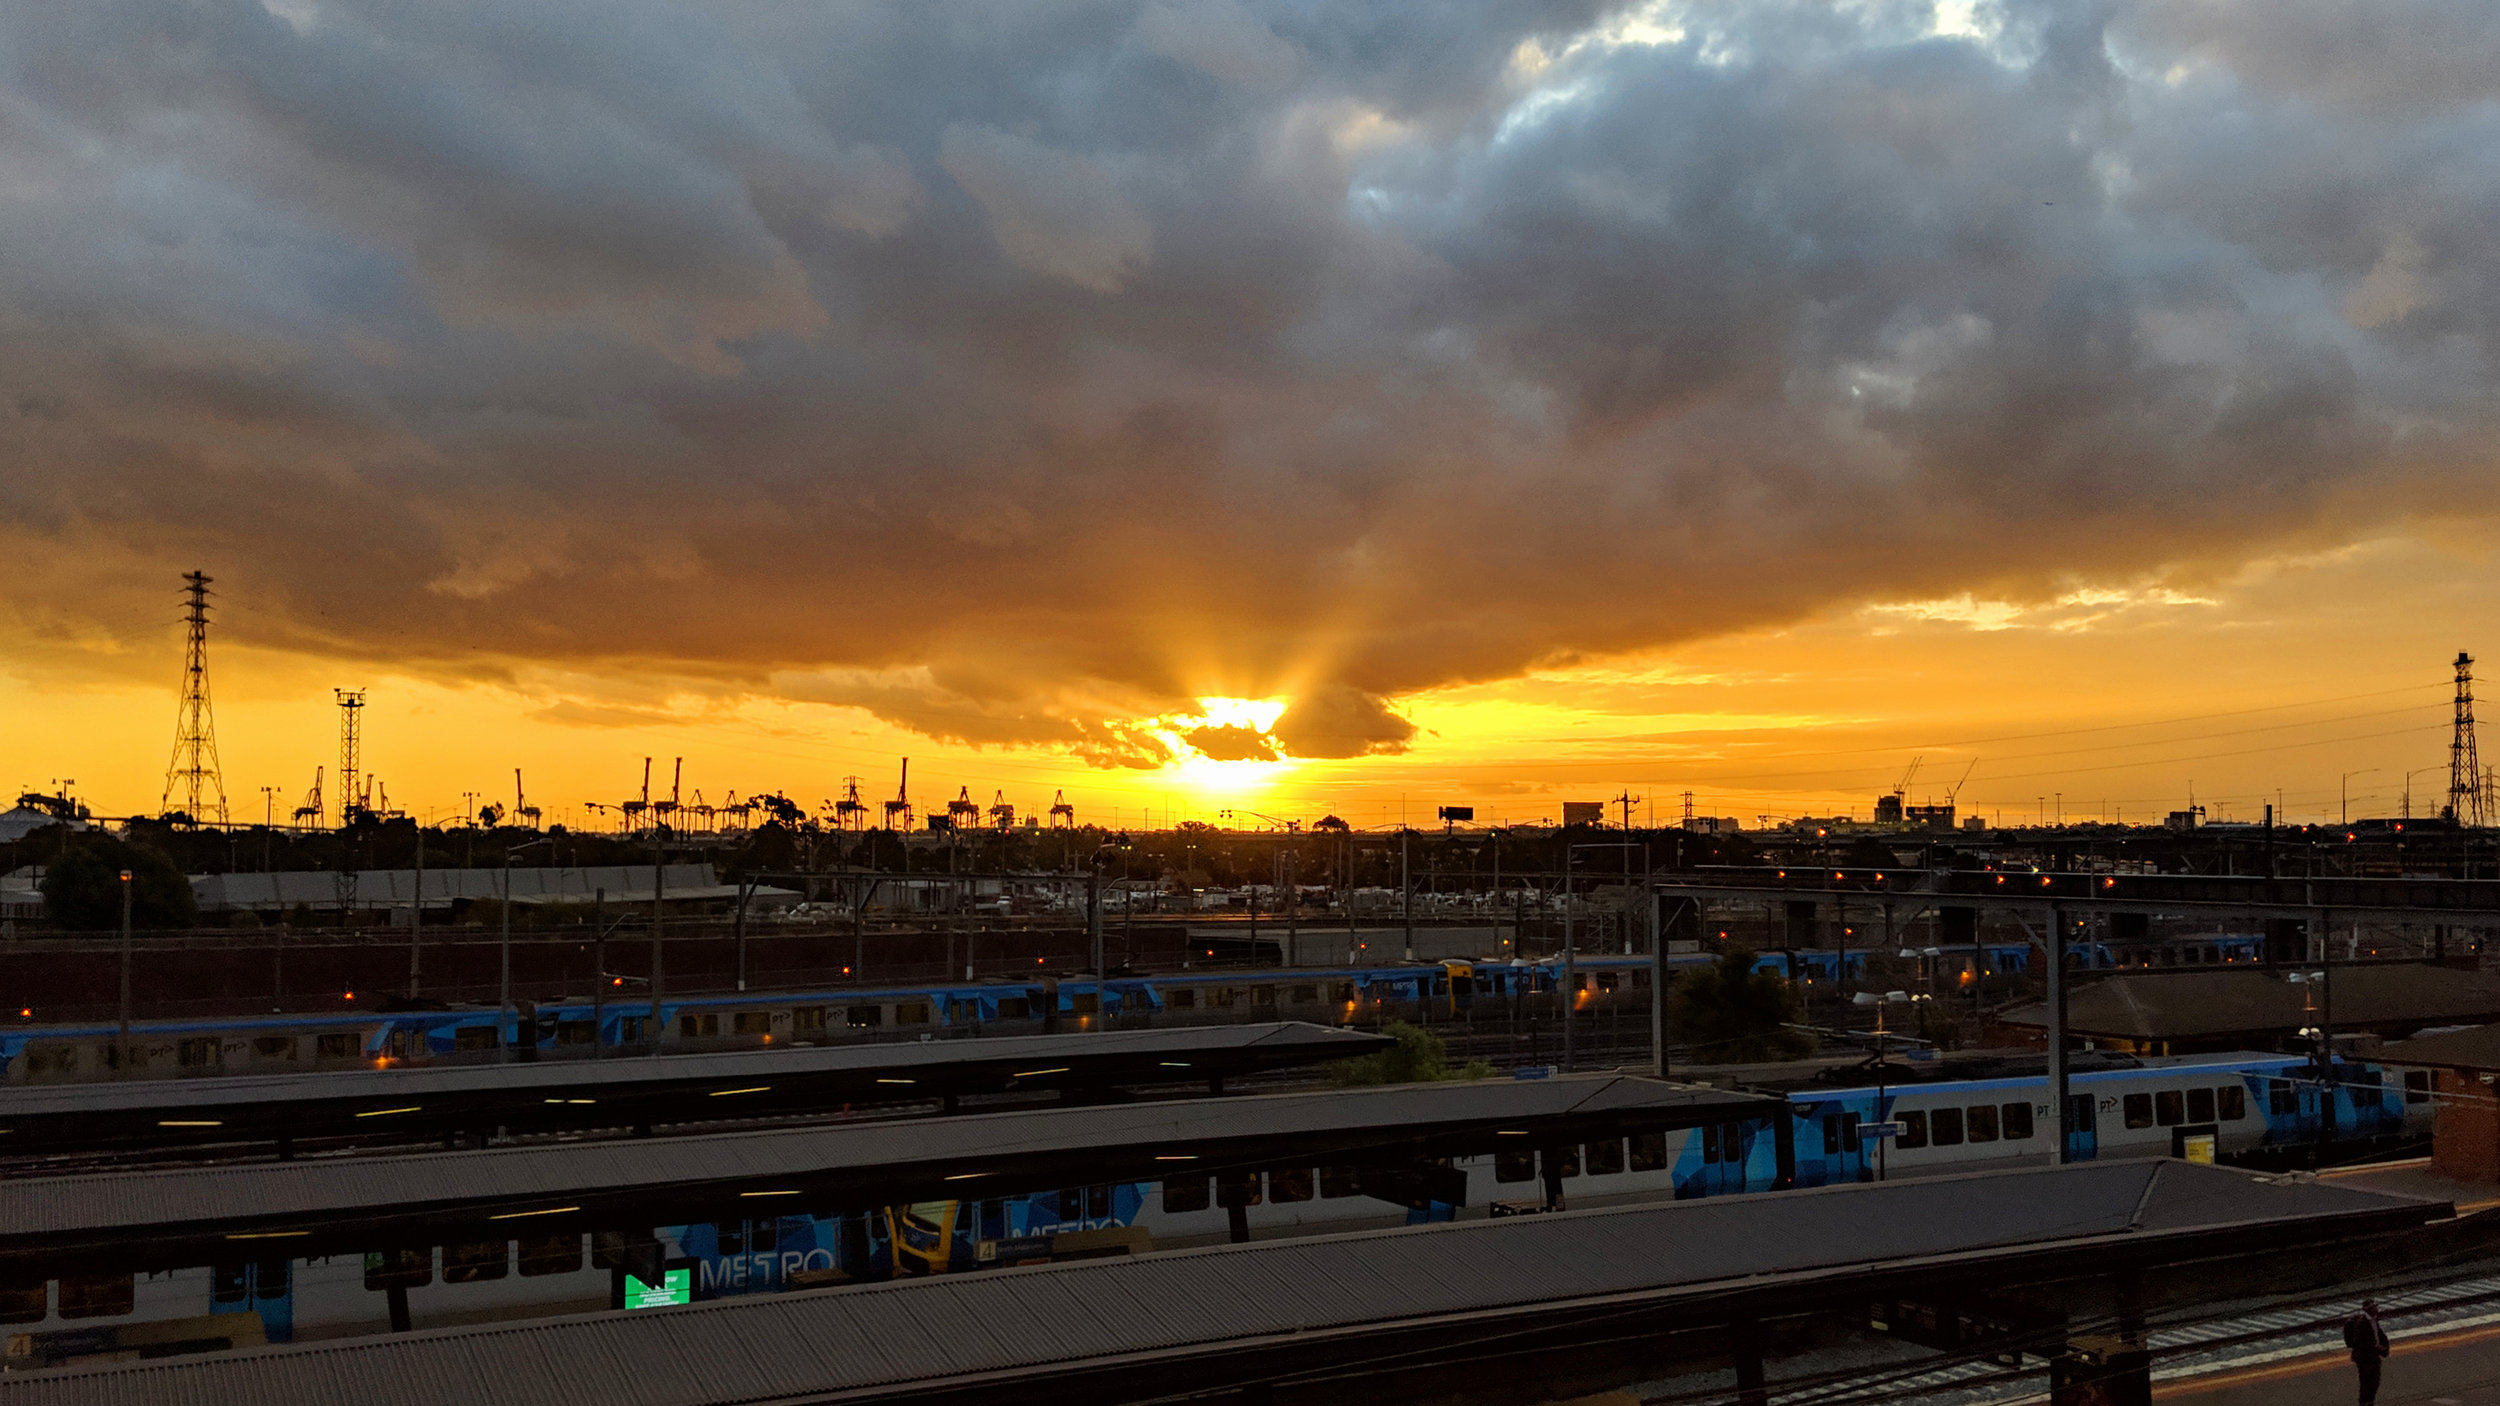 Sunset over North Melbourne railway station